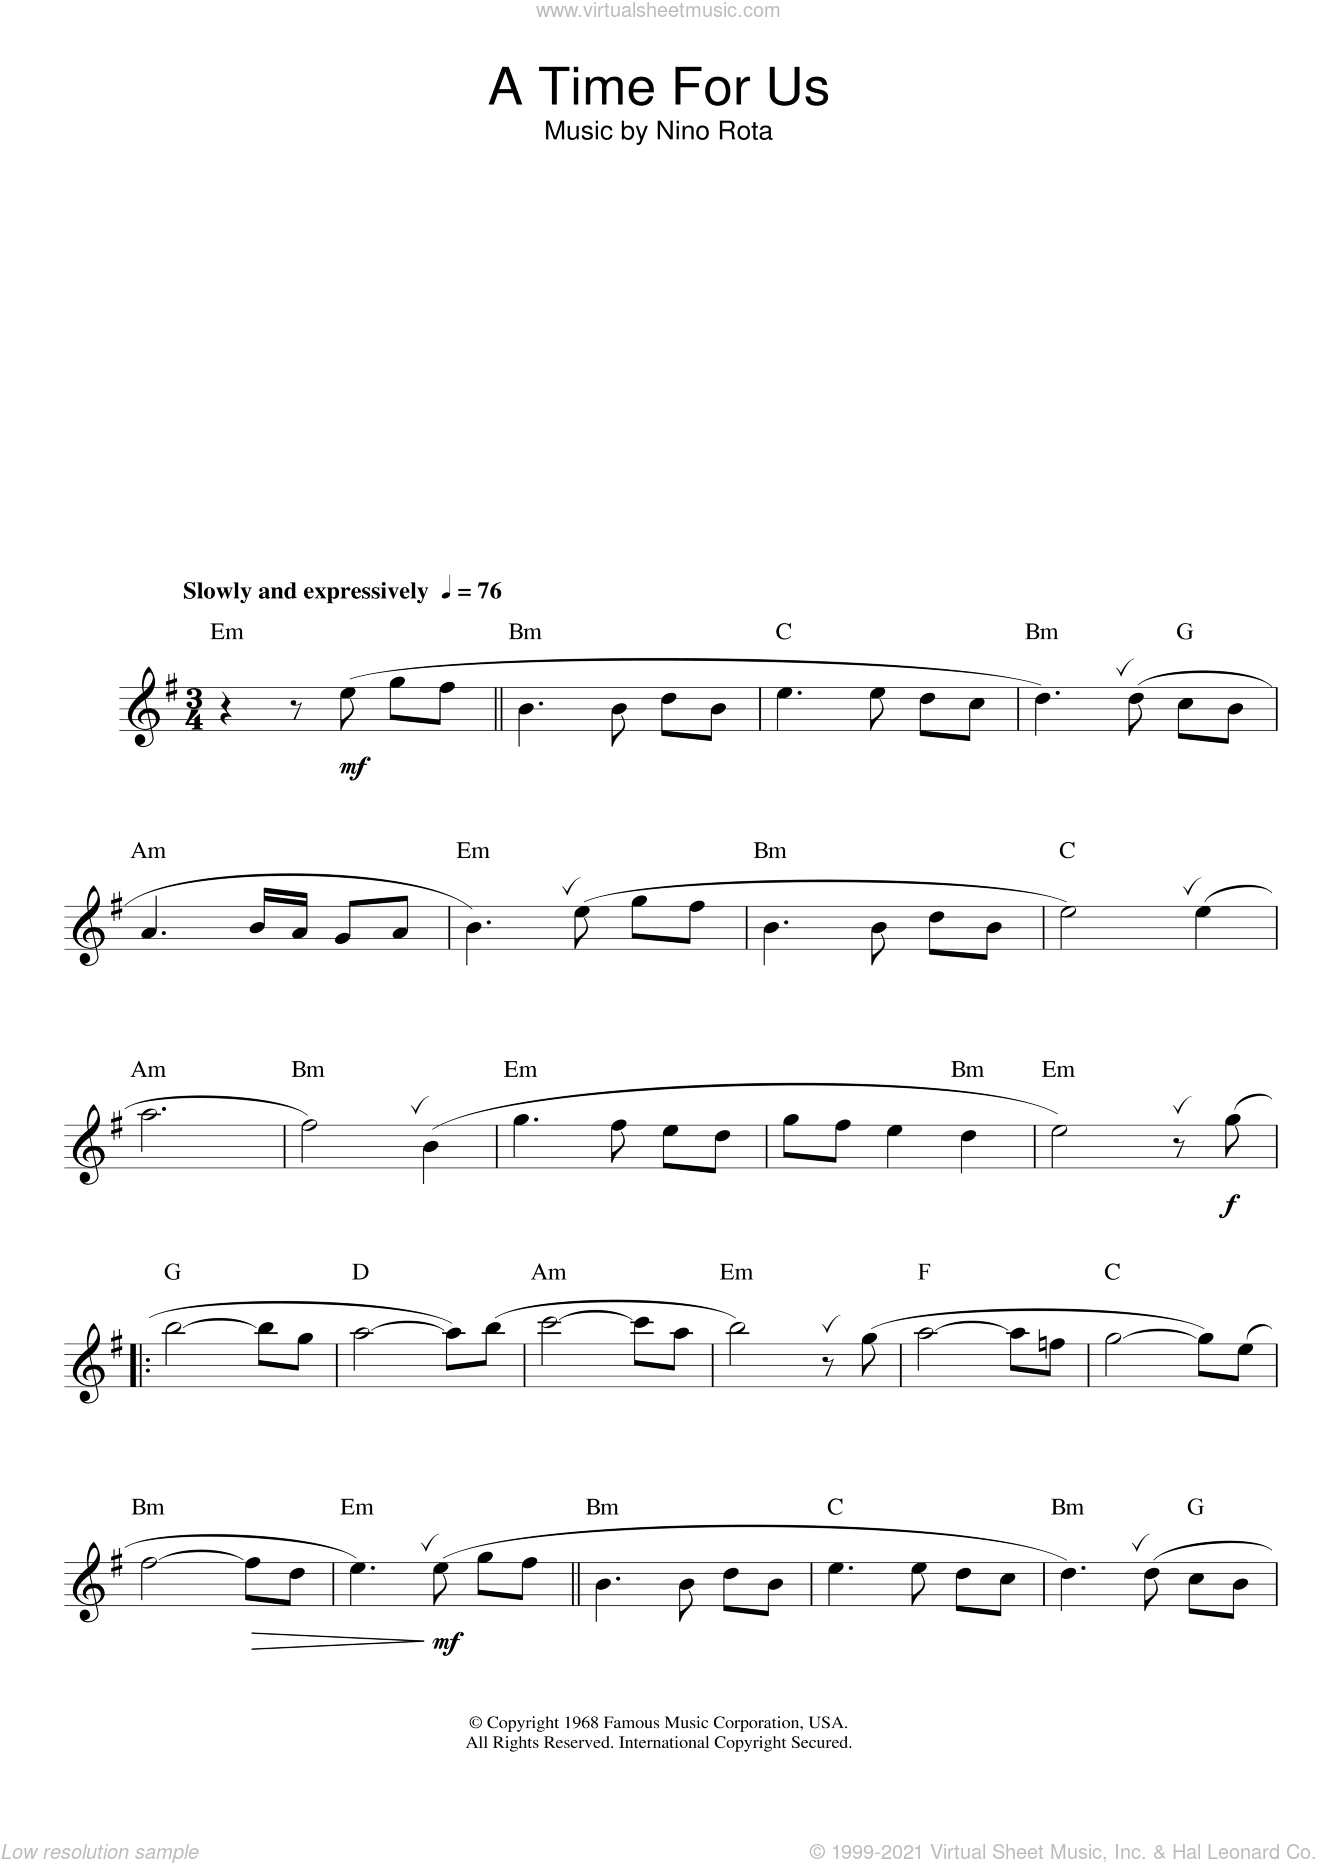 Romeo And Juliet (Love Theme) sheet music for flute solo by Nino Rota, intermediate skill level